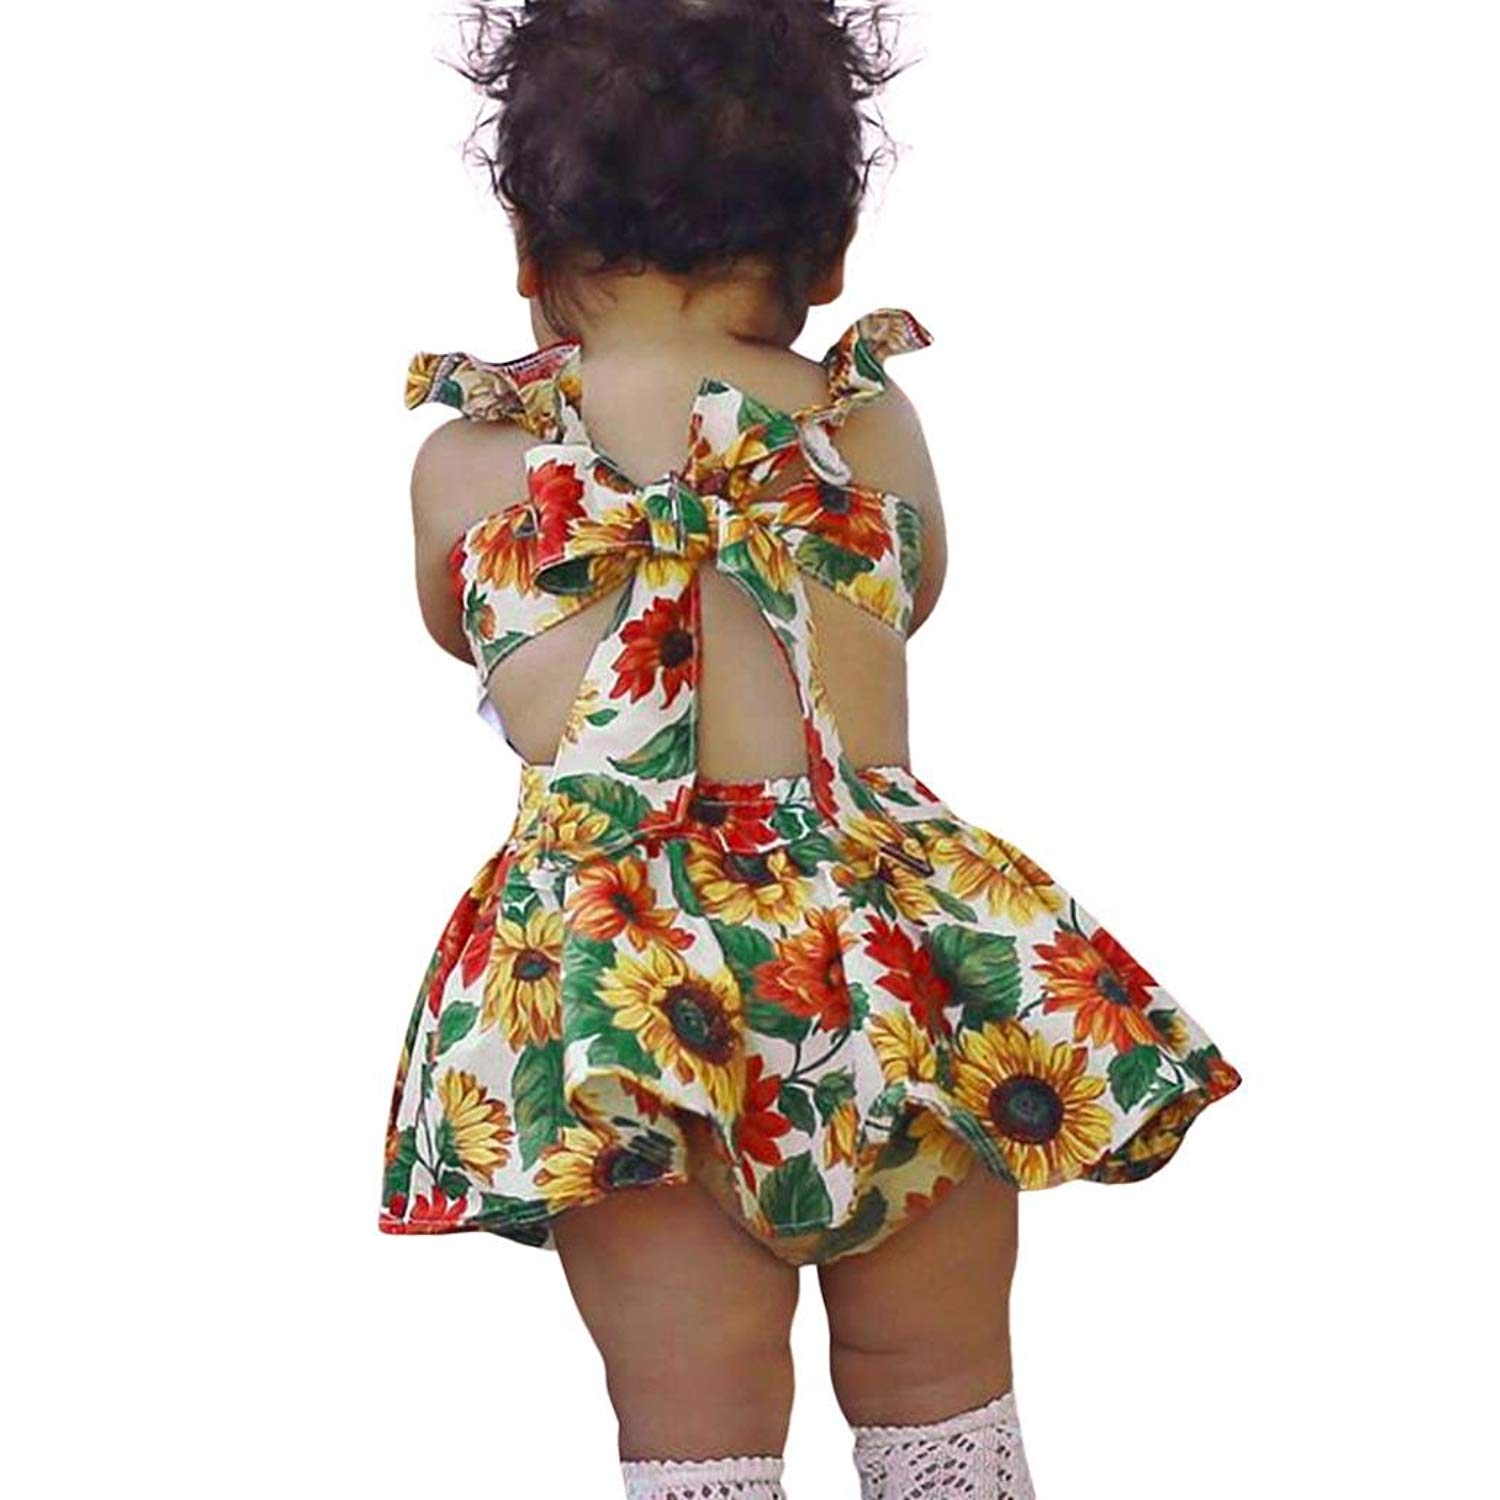 Amanod 2PC Toddler Kids Baby Girls Solid Tops+Floral Pants Outfits Set Clothes